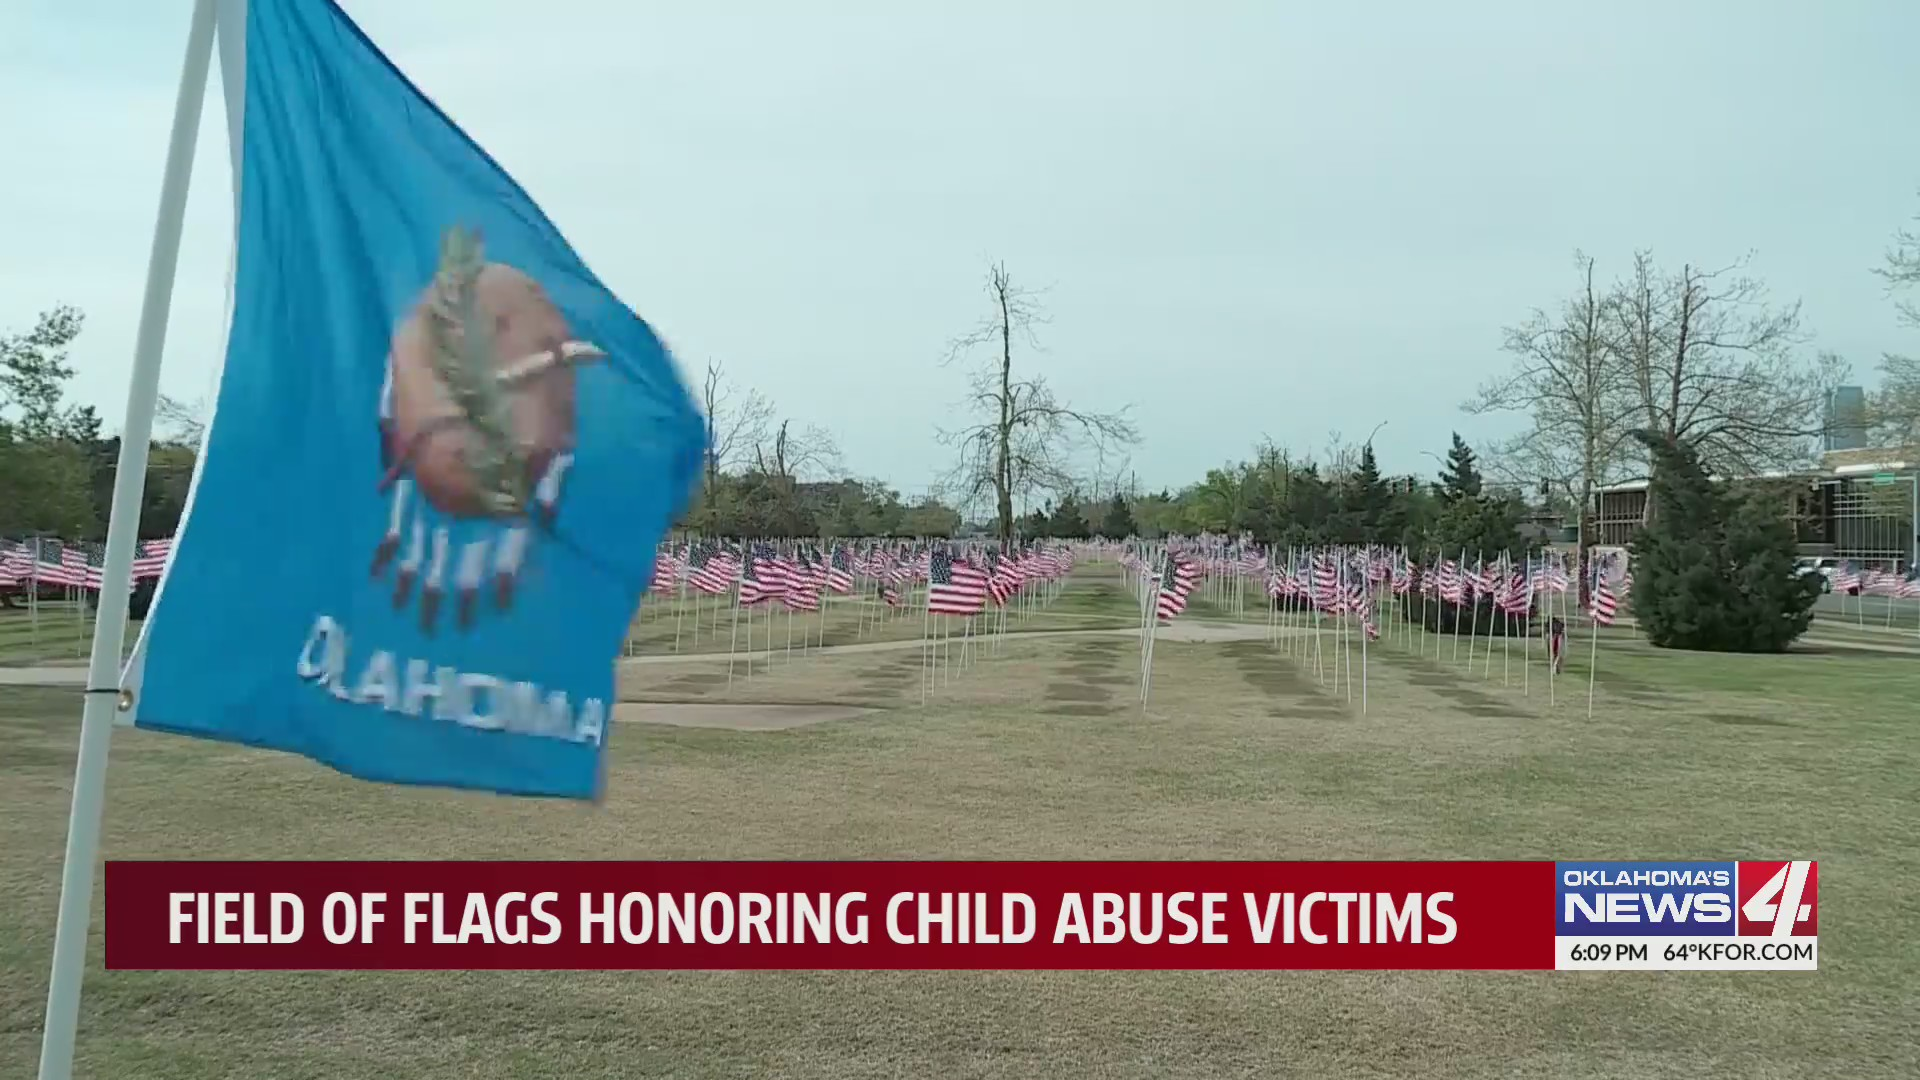 Each flag represents a child who dies of abuse or neglect in America every year.